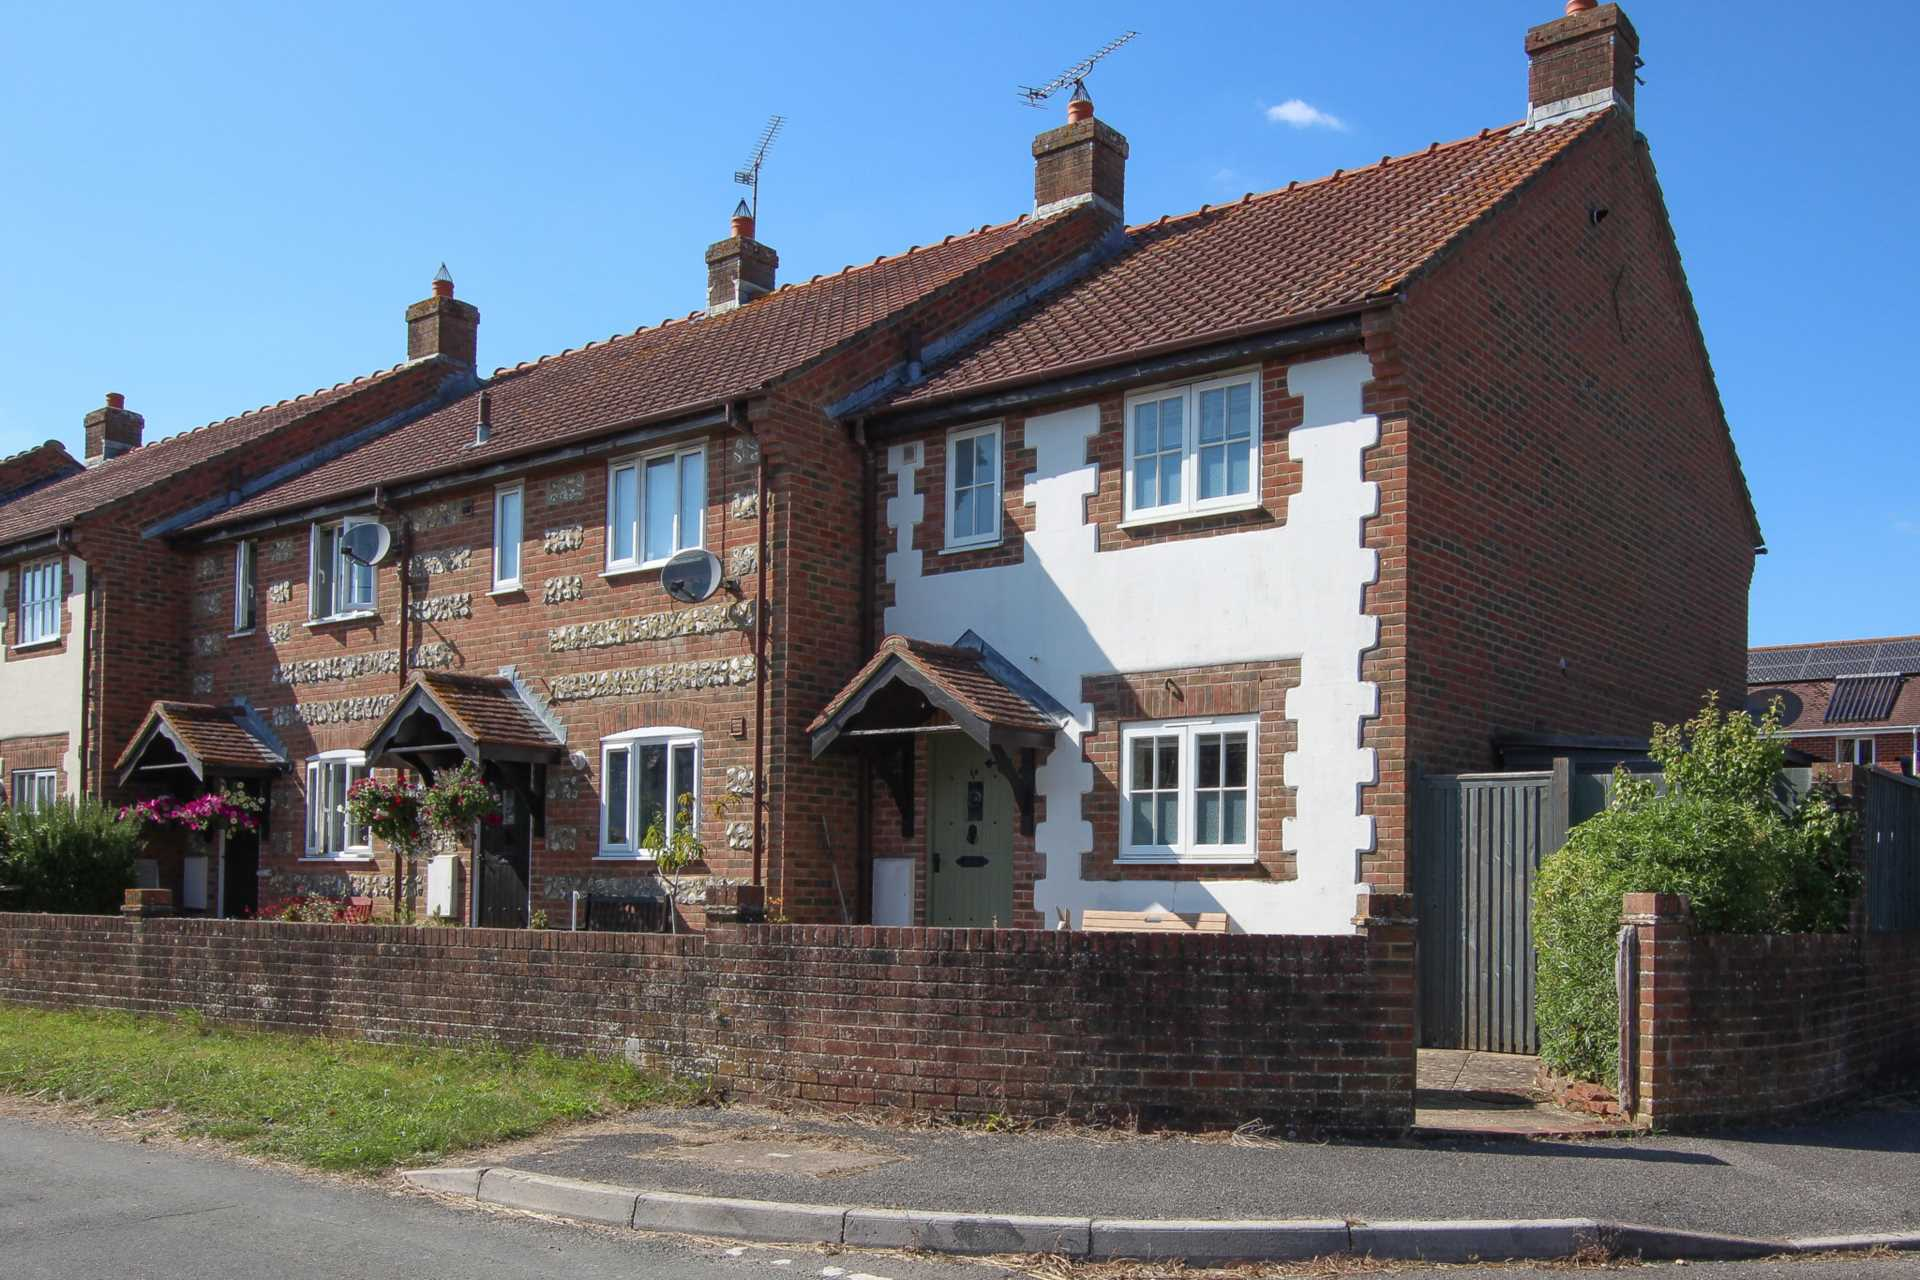 3 bed end of terrace house for sale in Plumbley Meadows, Winterborne Kingston, Blandford Forum 0